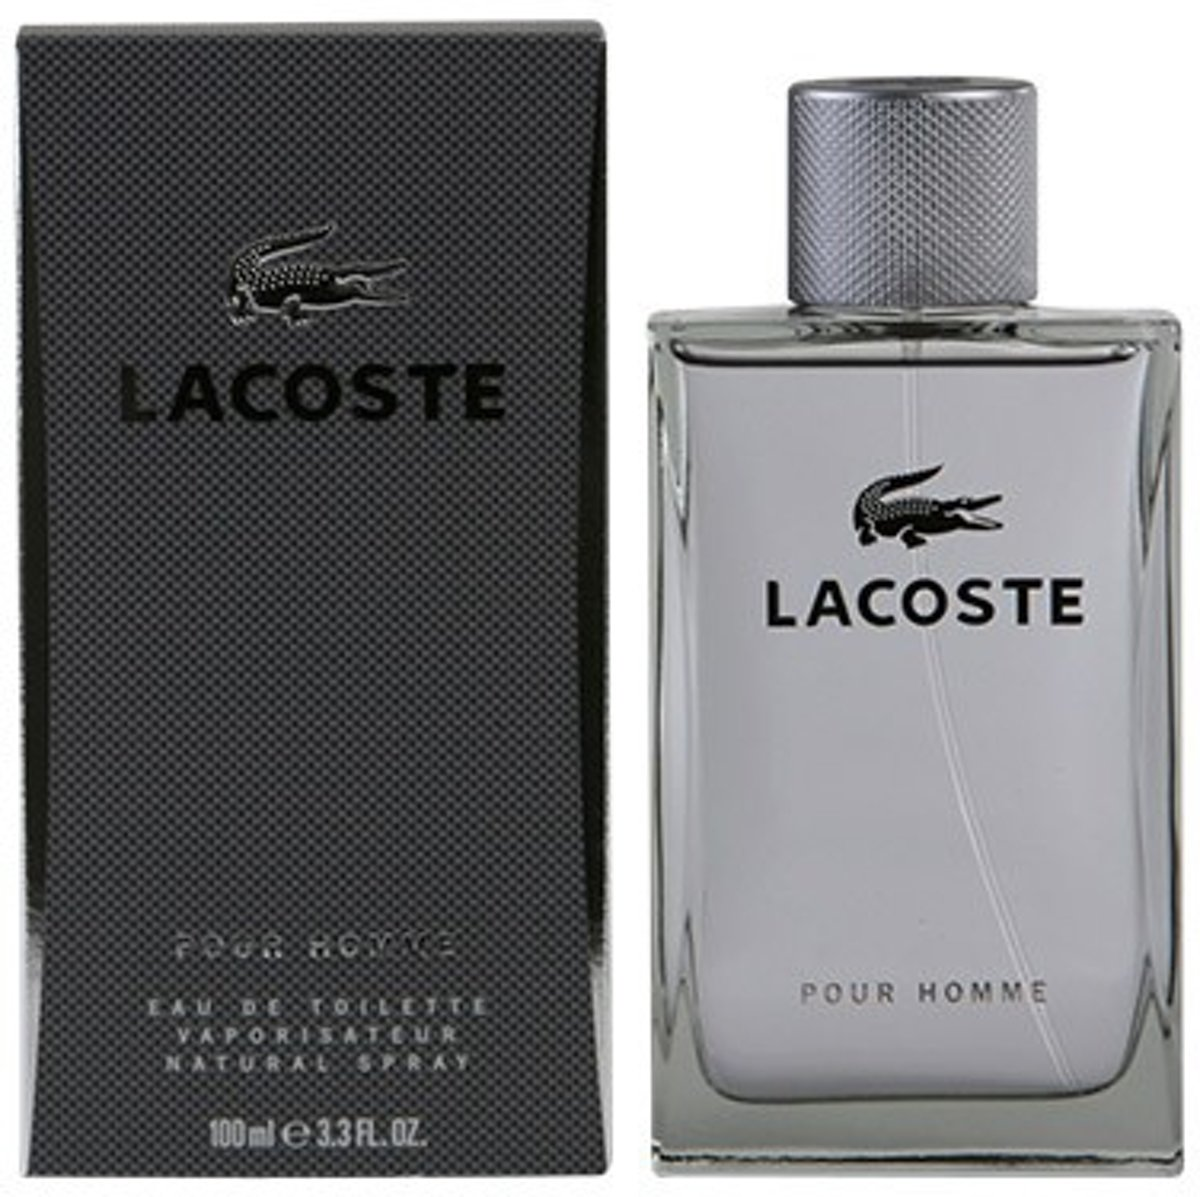 MULTI BUNDEL 2 stuks LACOSTE HOMME eau de toilette spray 100 ml